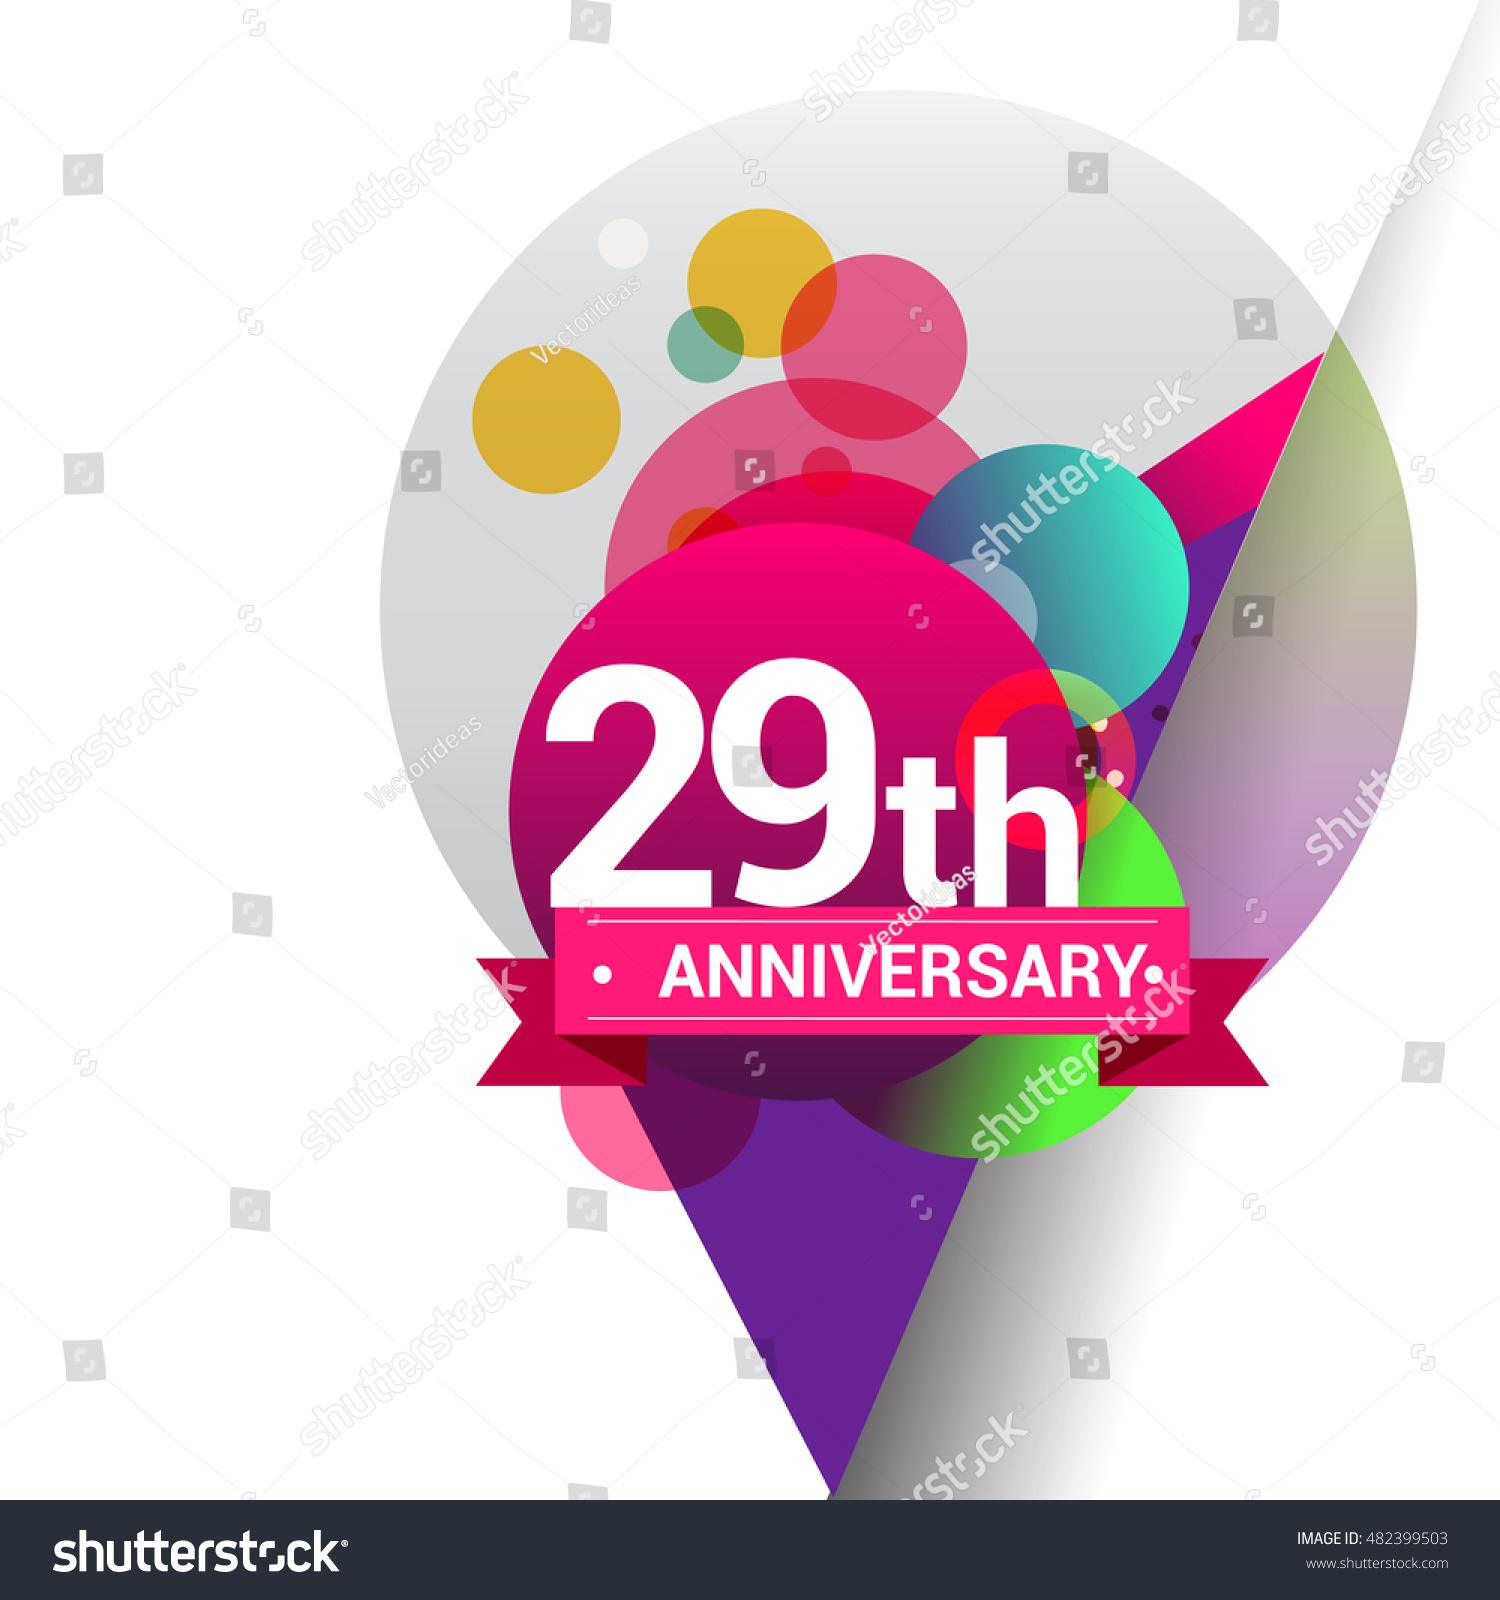 29th Anniversary Logo Colorful Geometric Background Stock Vector ...